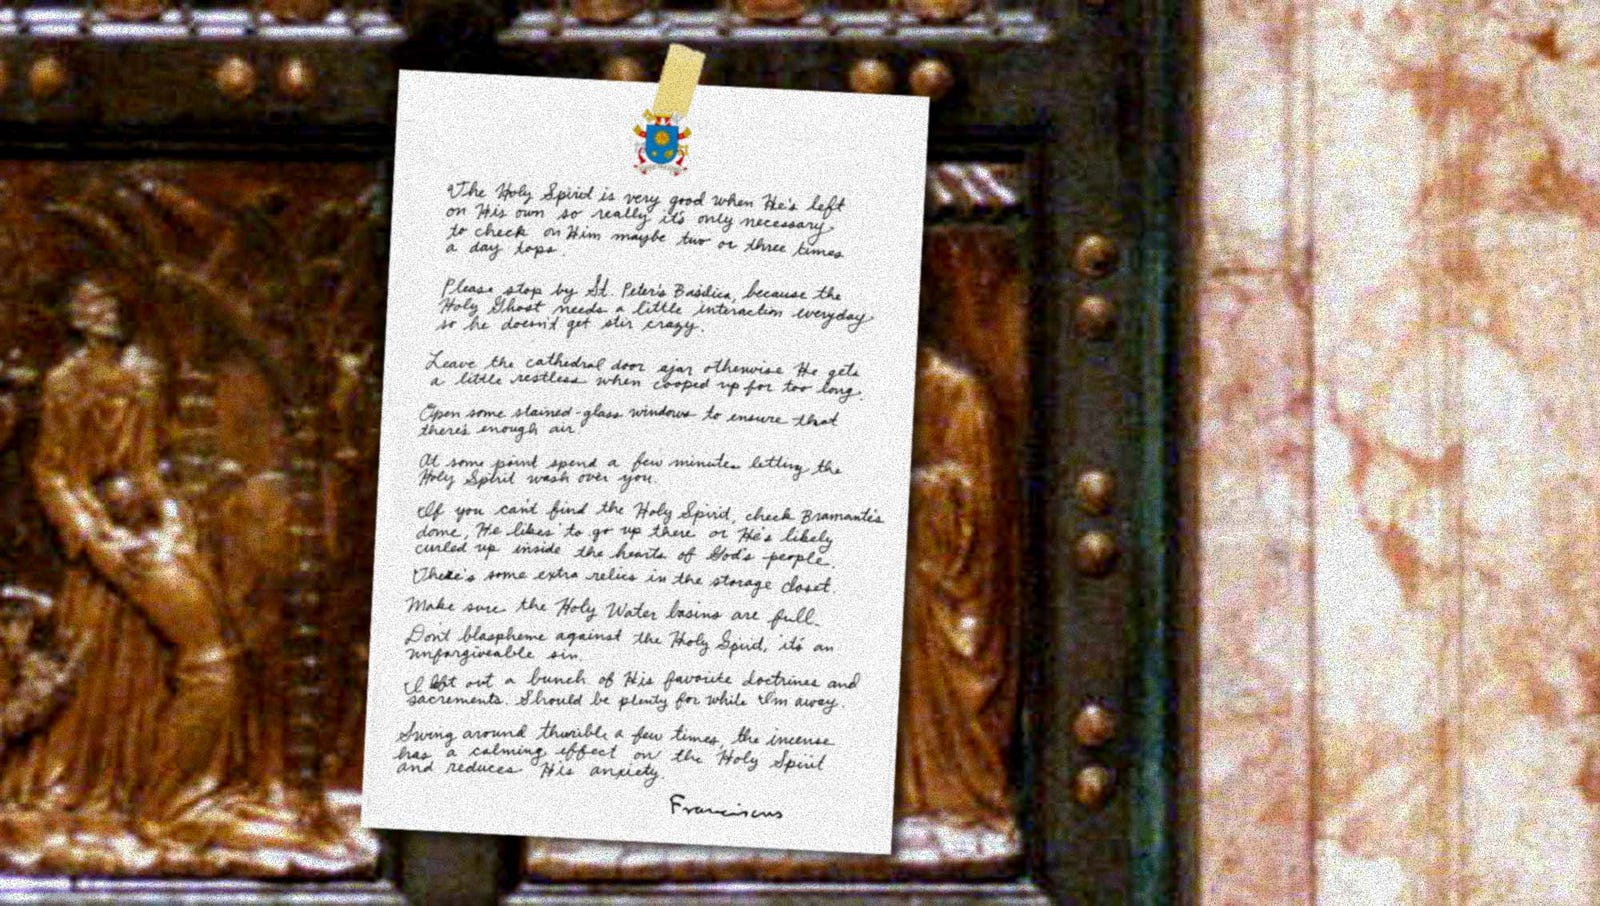 Pope Leaves Detailed Instructions For Taking Care Of Holy Spirit While He Out Of Town